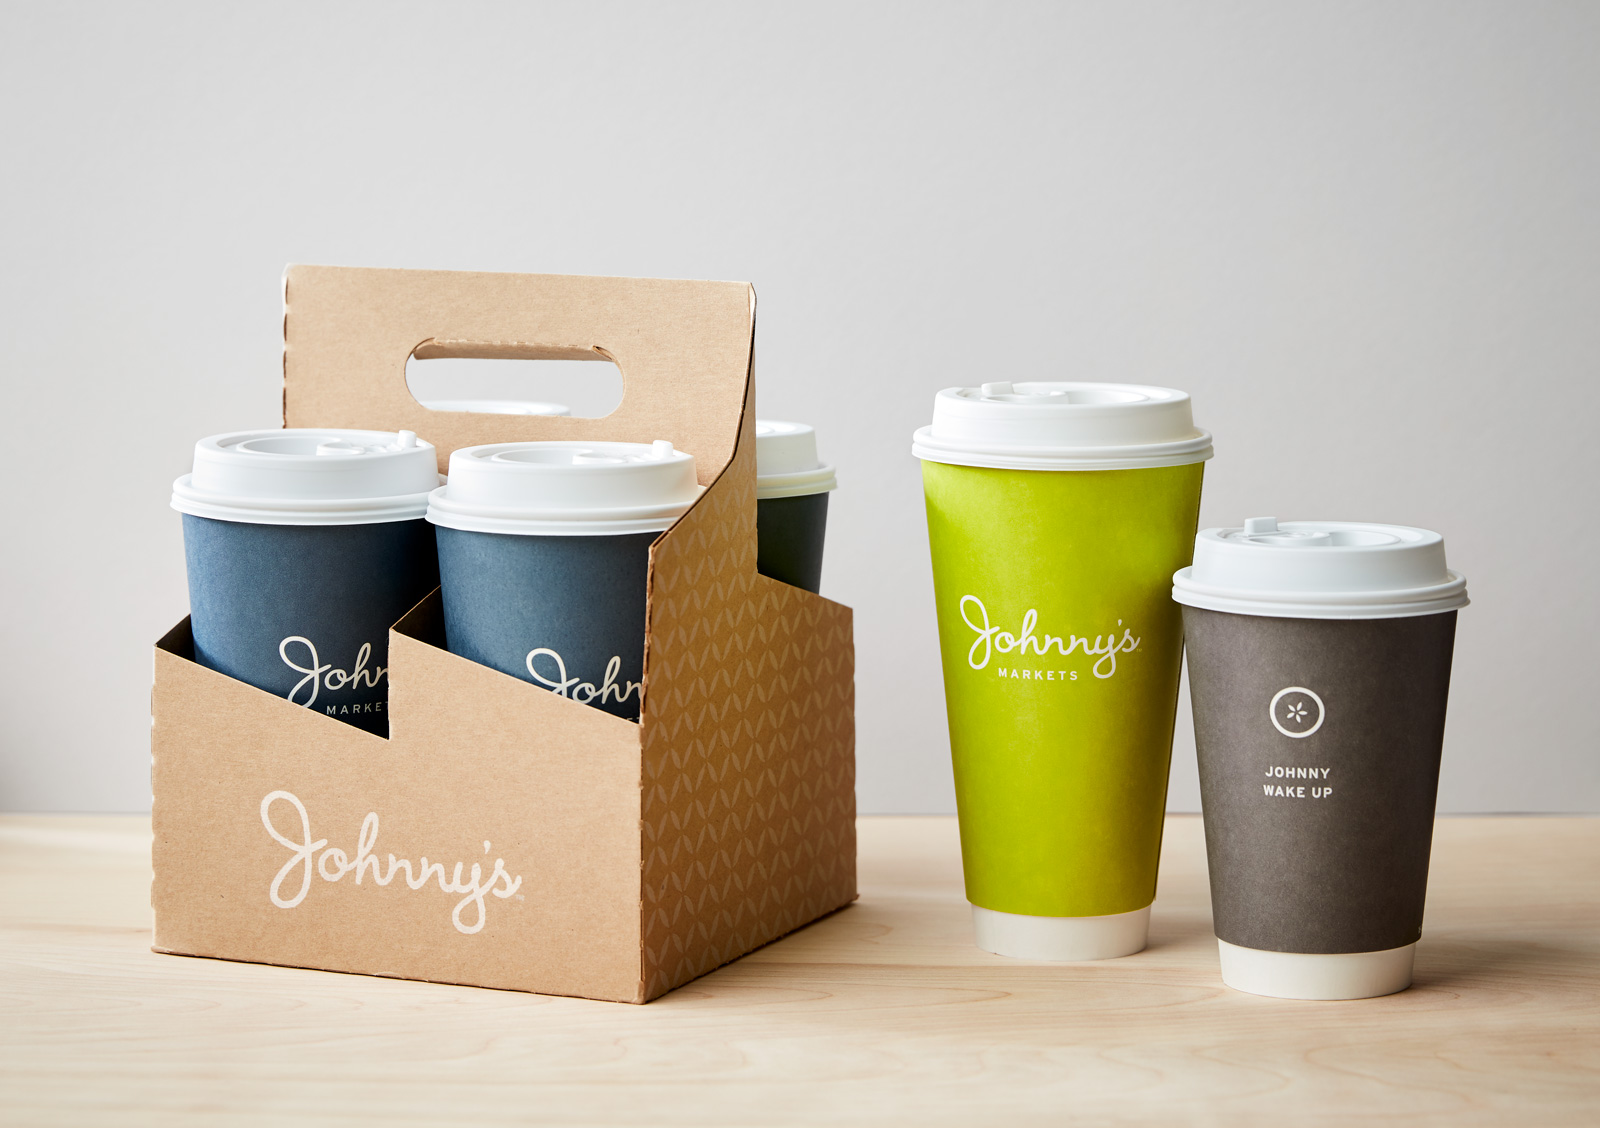 Johnny's Markets coffee cups in a kraft carrier container.